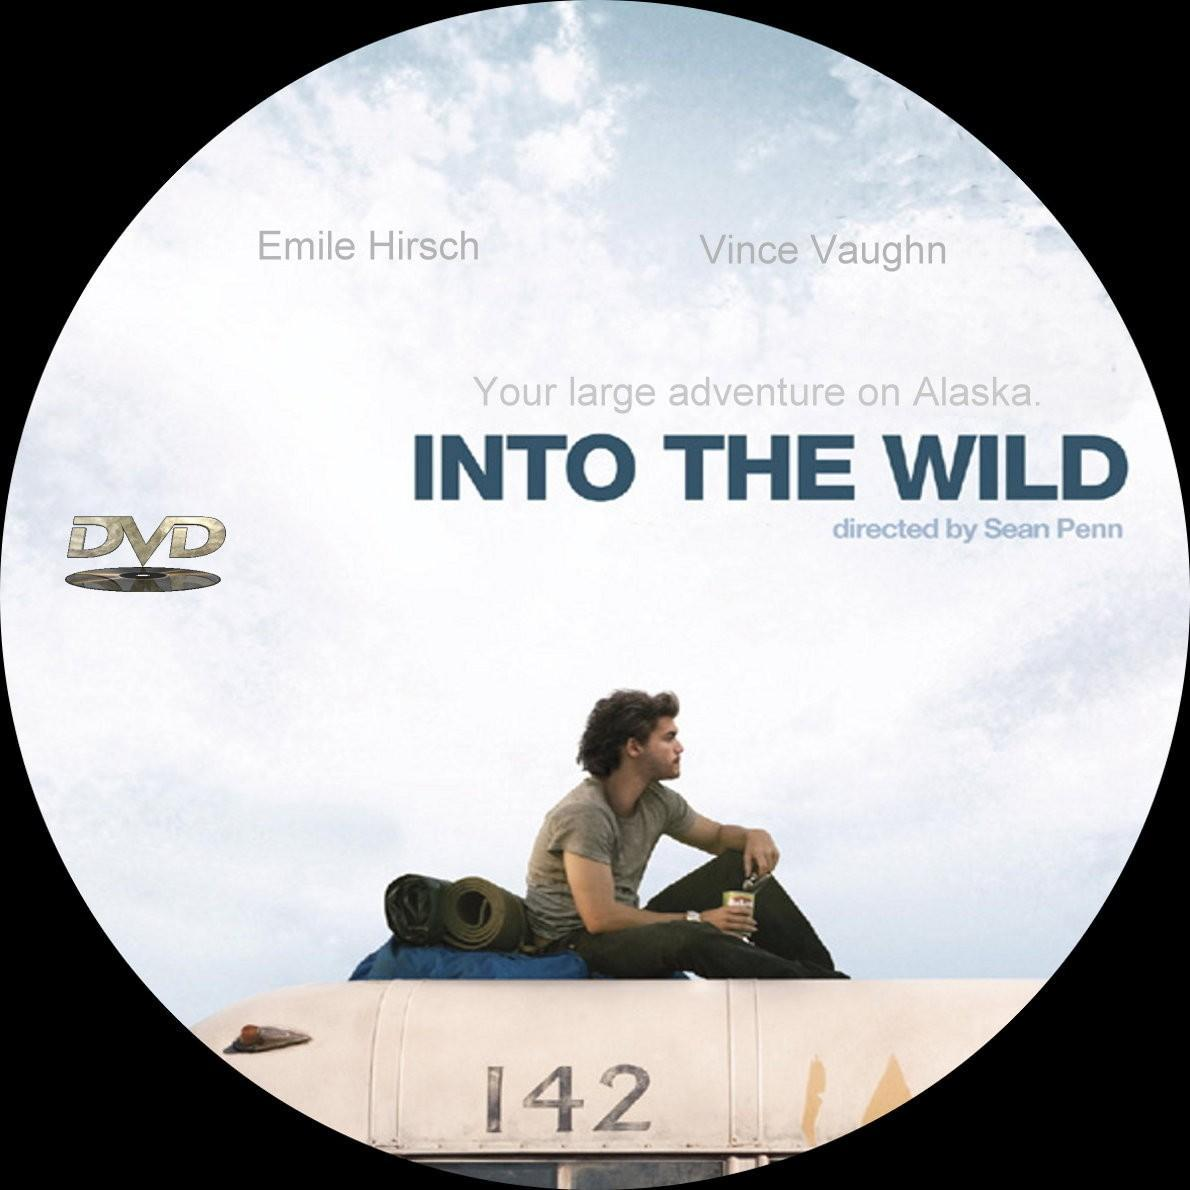 Image Gallery For Into The Wild